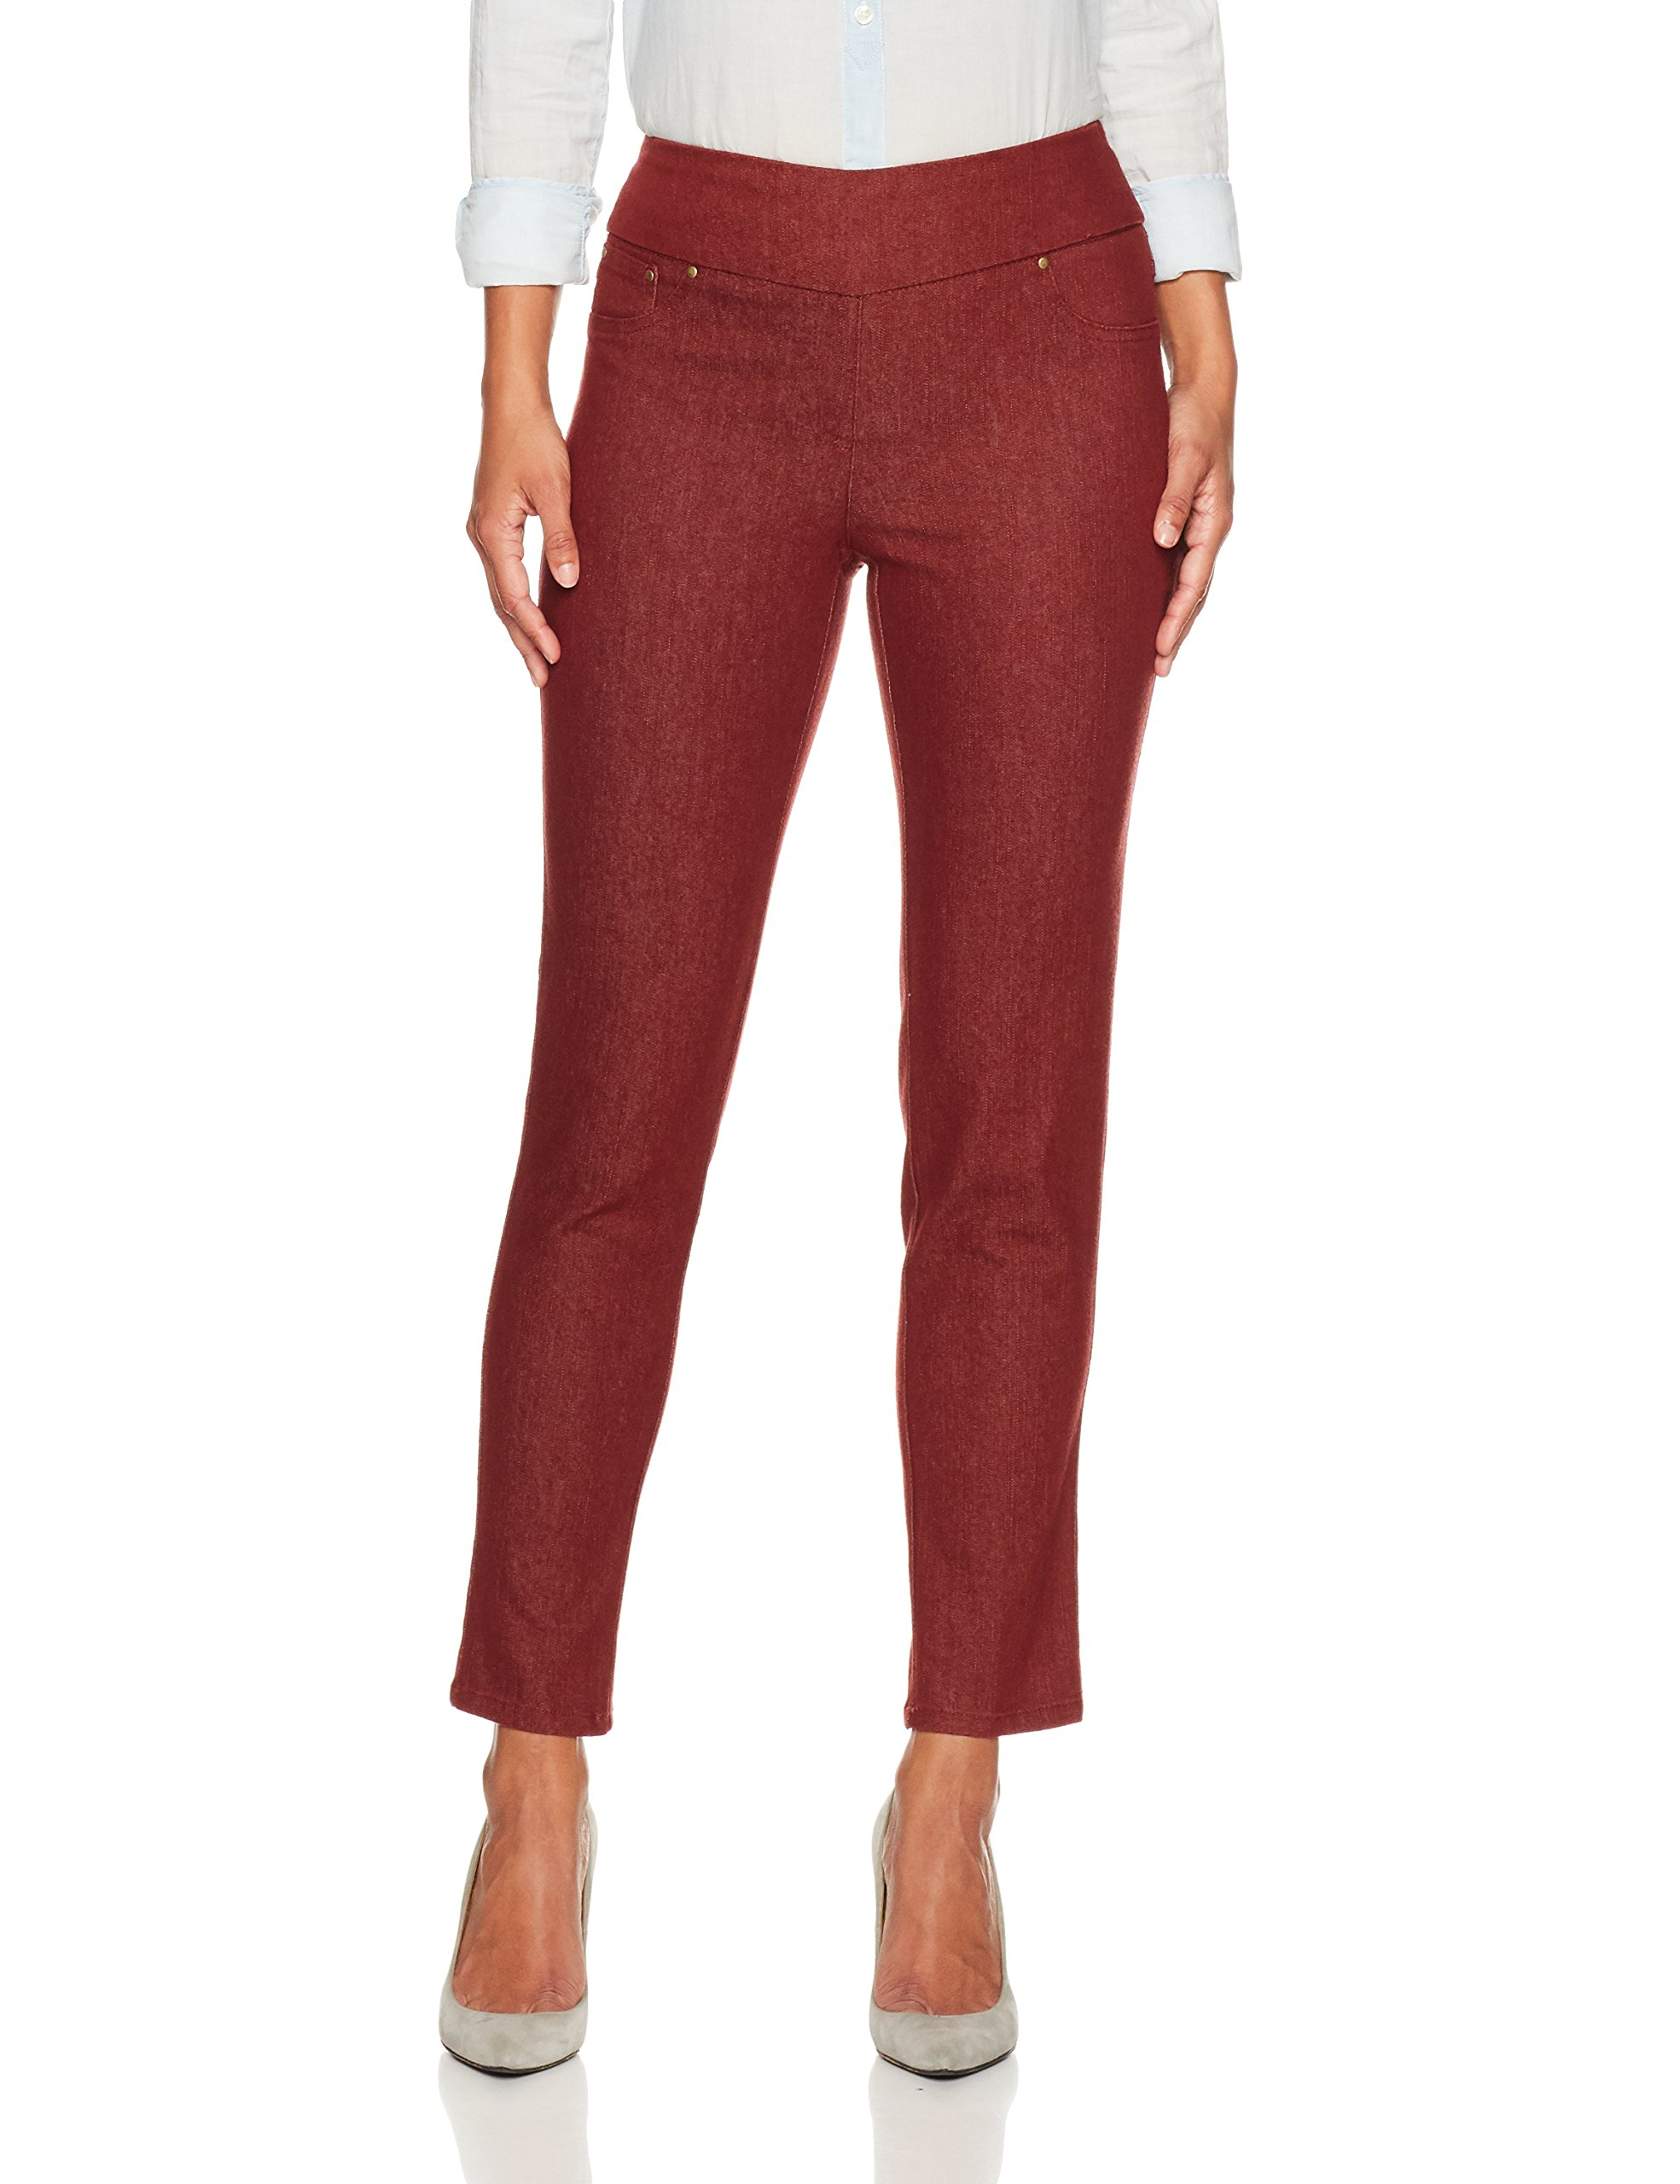 Ruby Rd. Women's Petite Pull-on Colored Extra Stretch Denim Pant, Burgundy, 12P